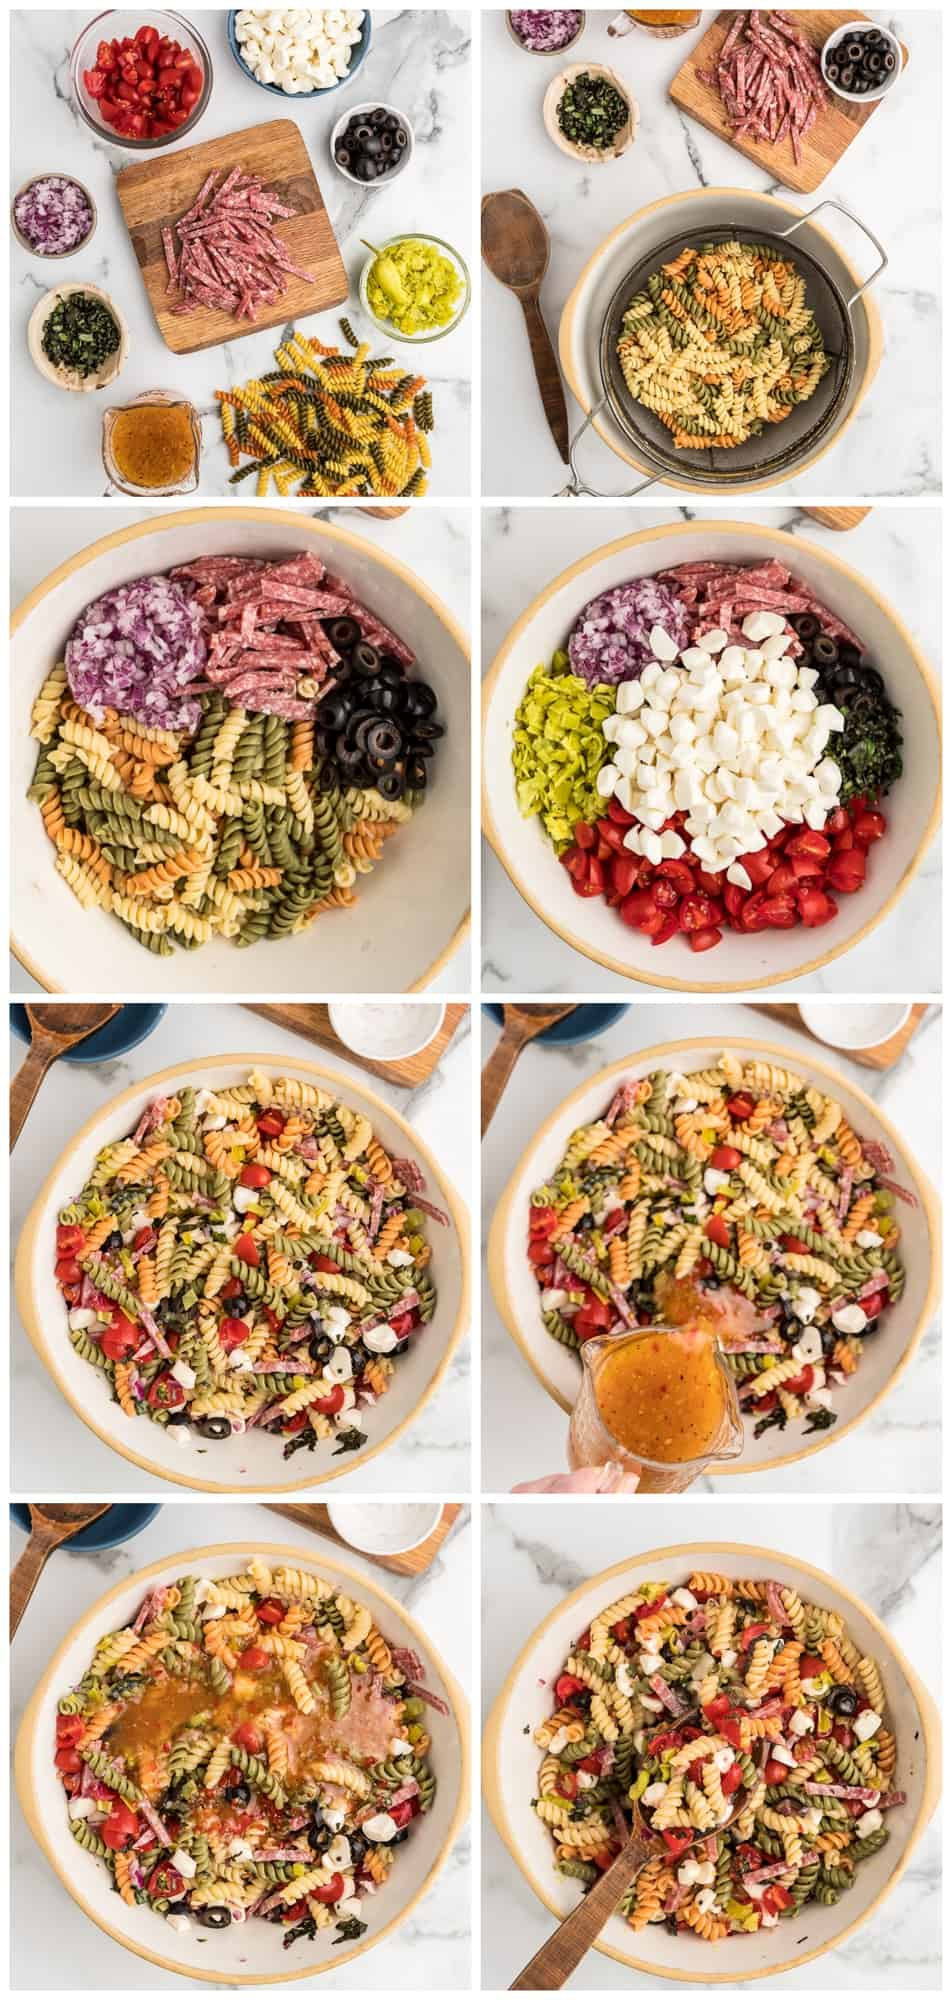 italian pasta salad step by step process shots